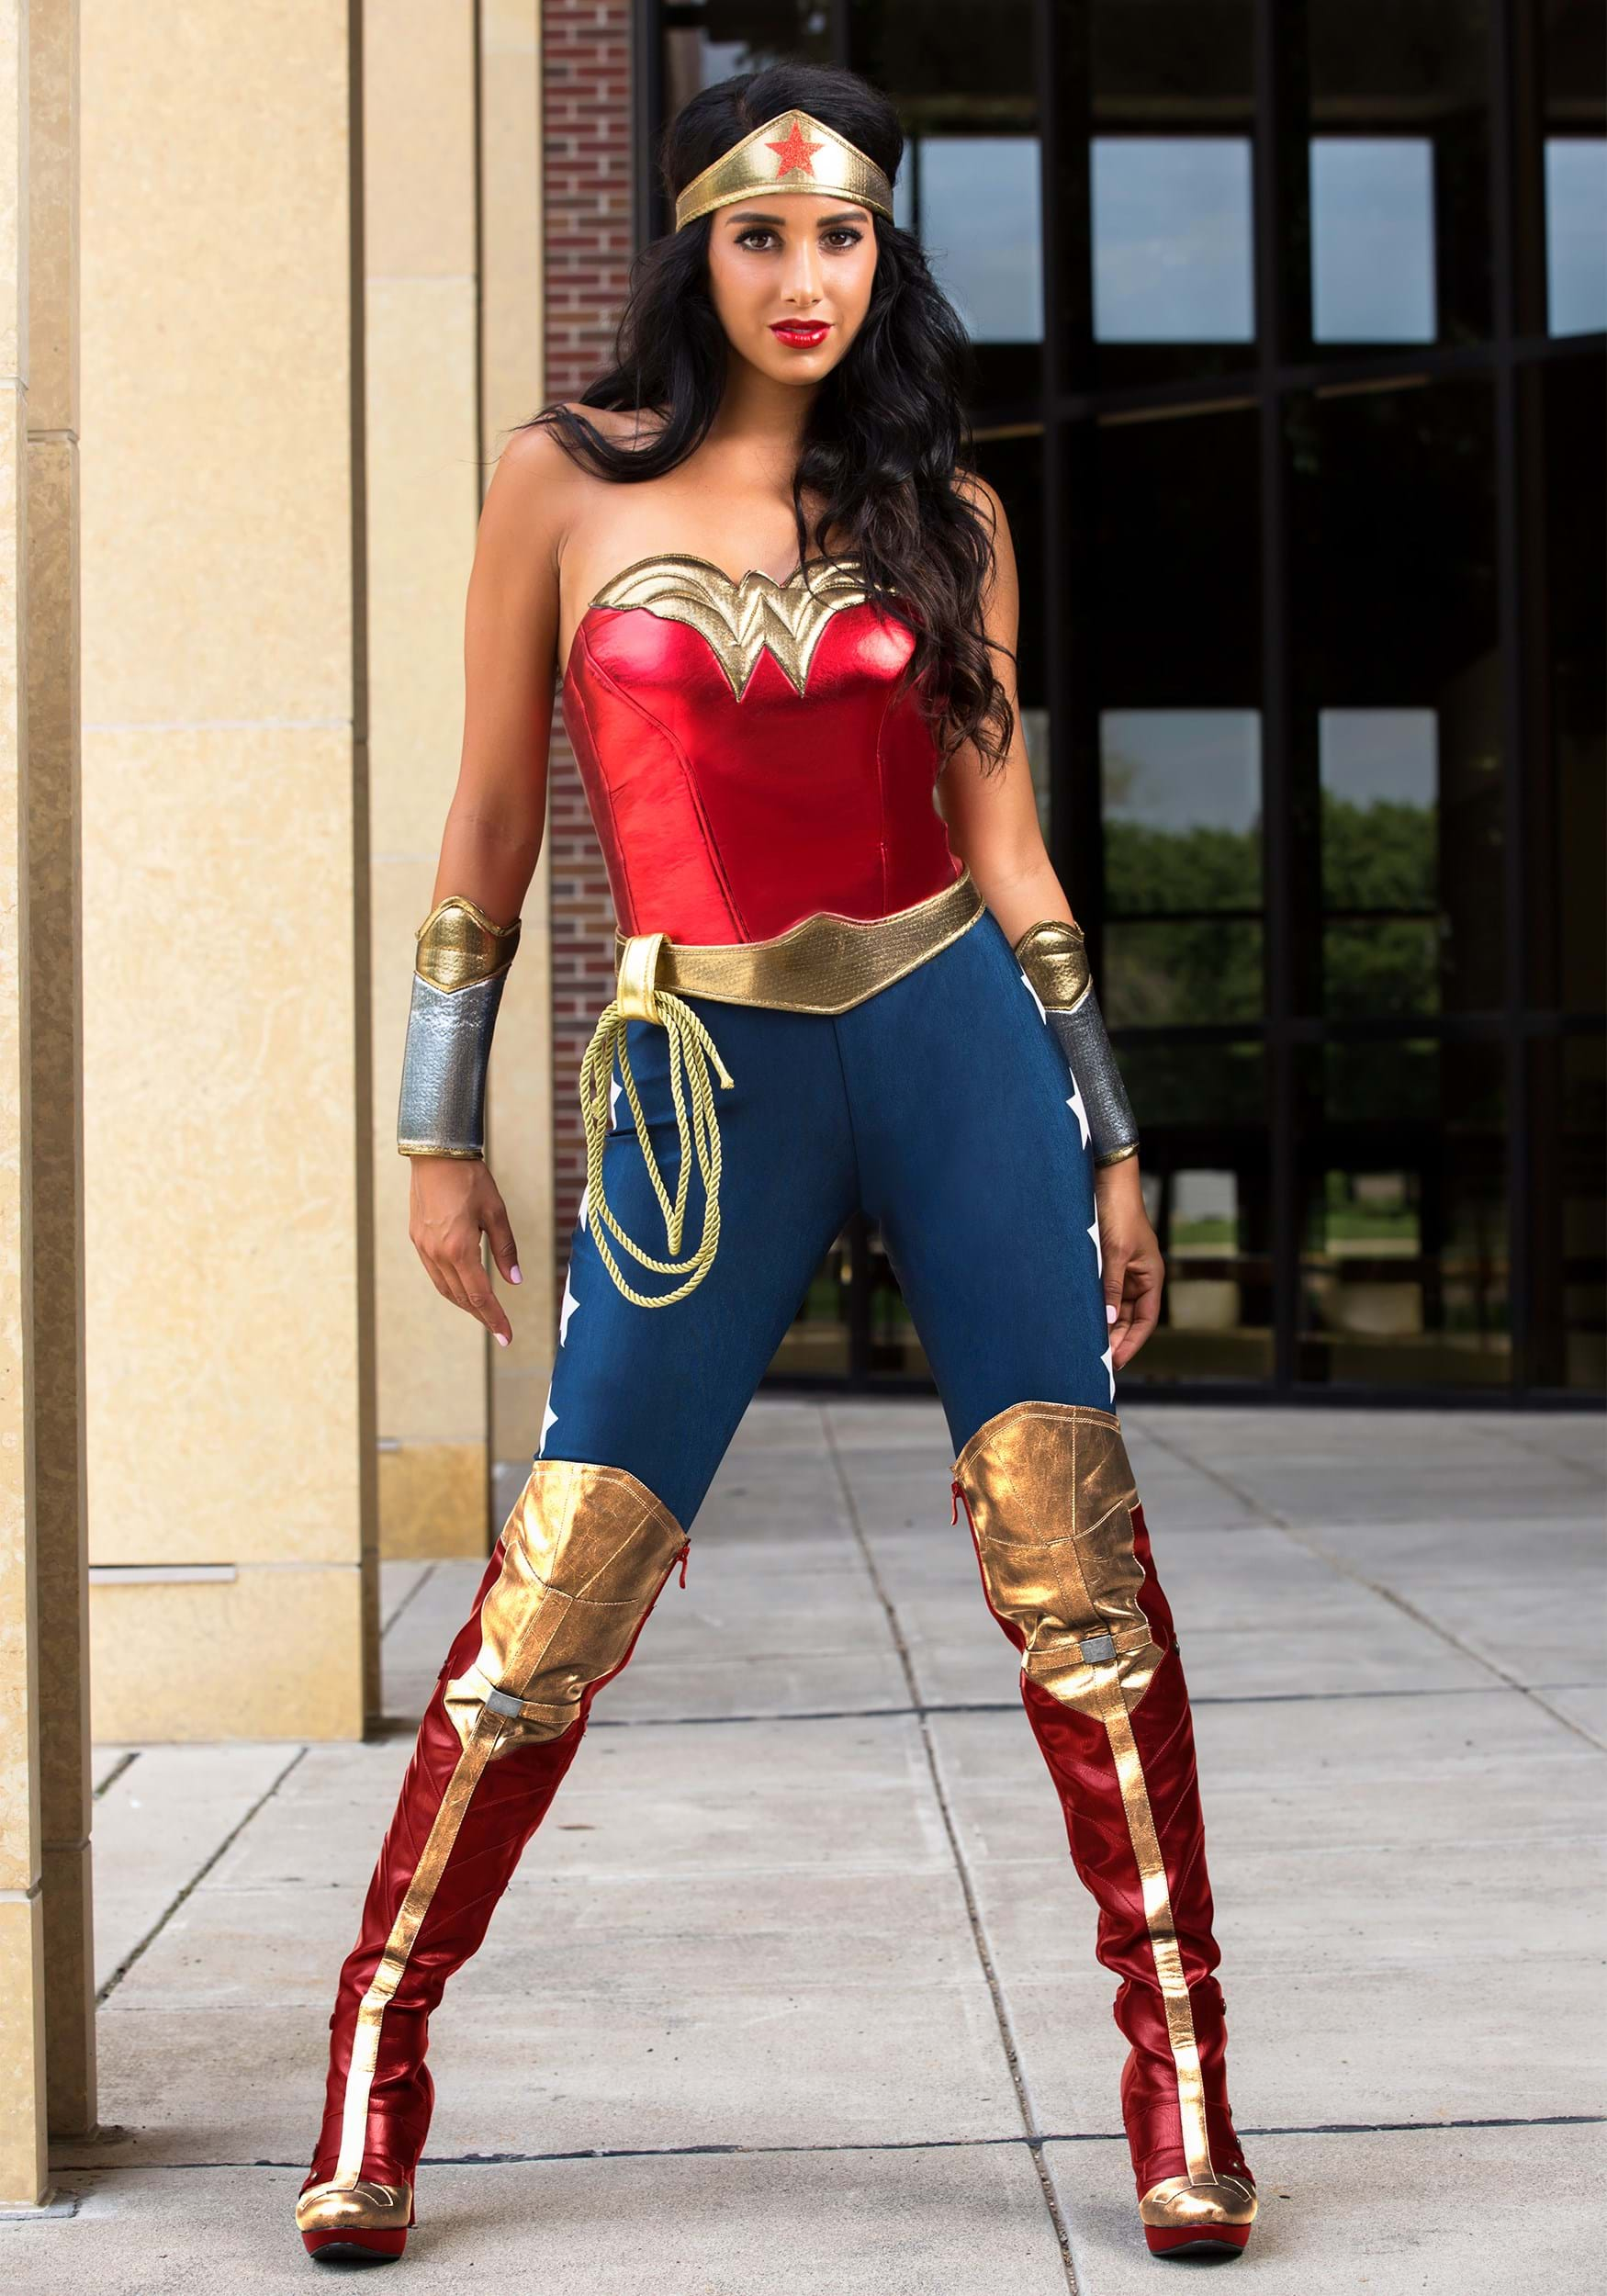 Where to buy wonder woman costume-4688